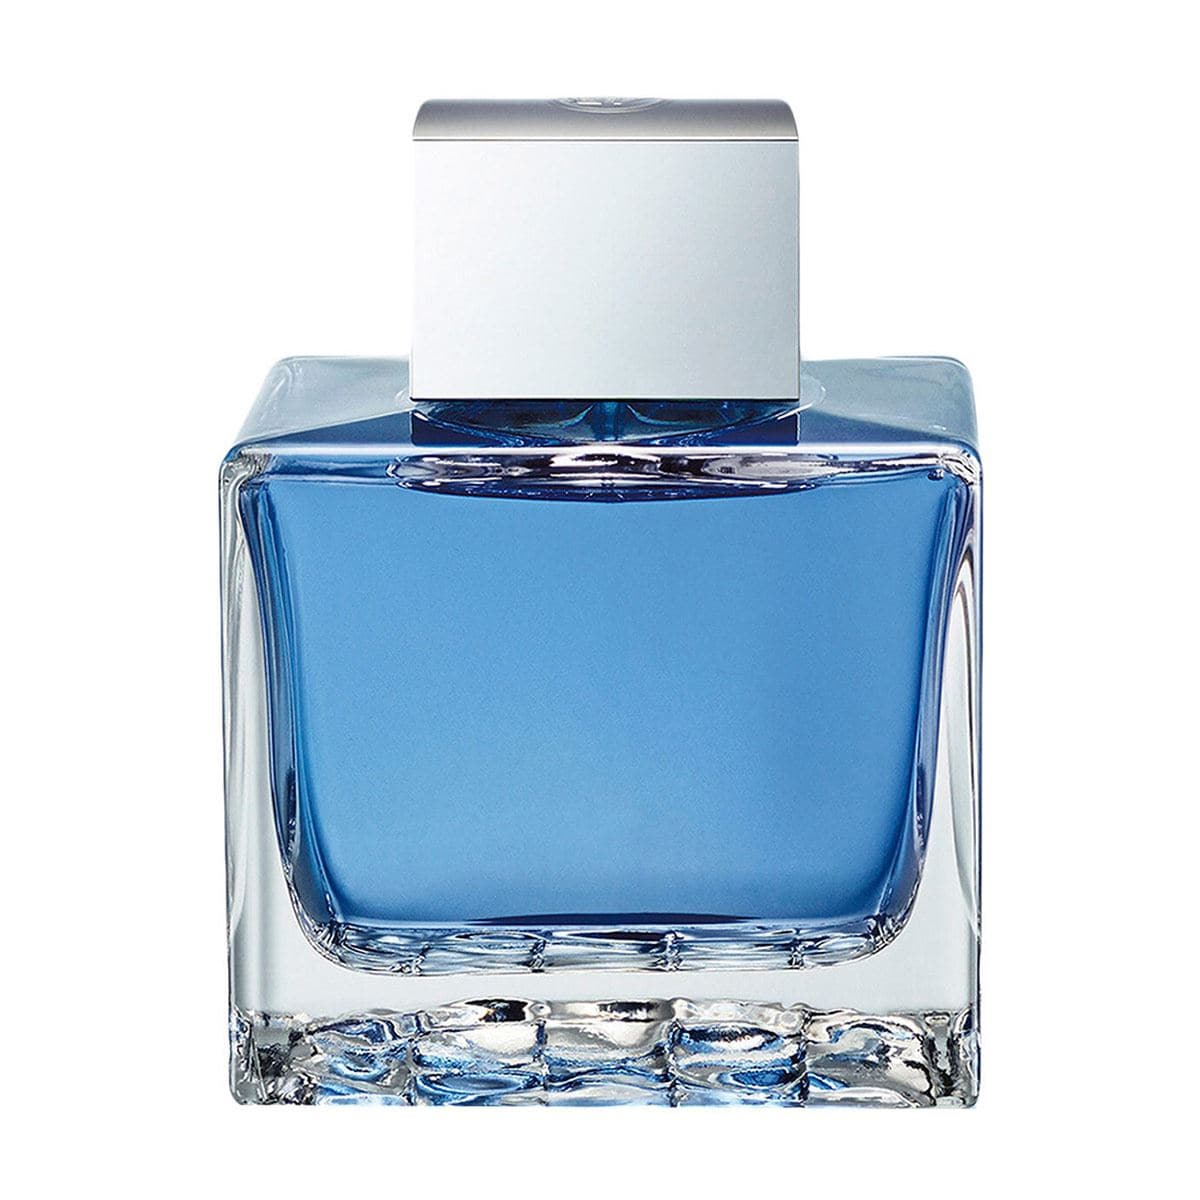 Set para caballero, Antonio Banderas, Blue seduction, EDT 100ML + desodorante 150ML